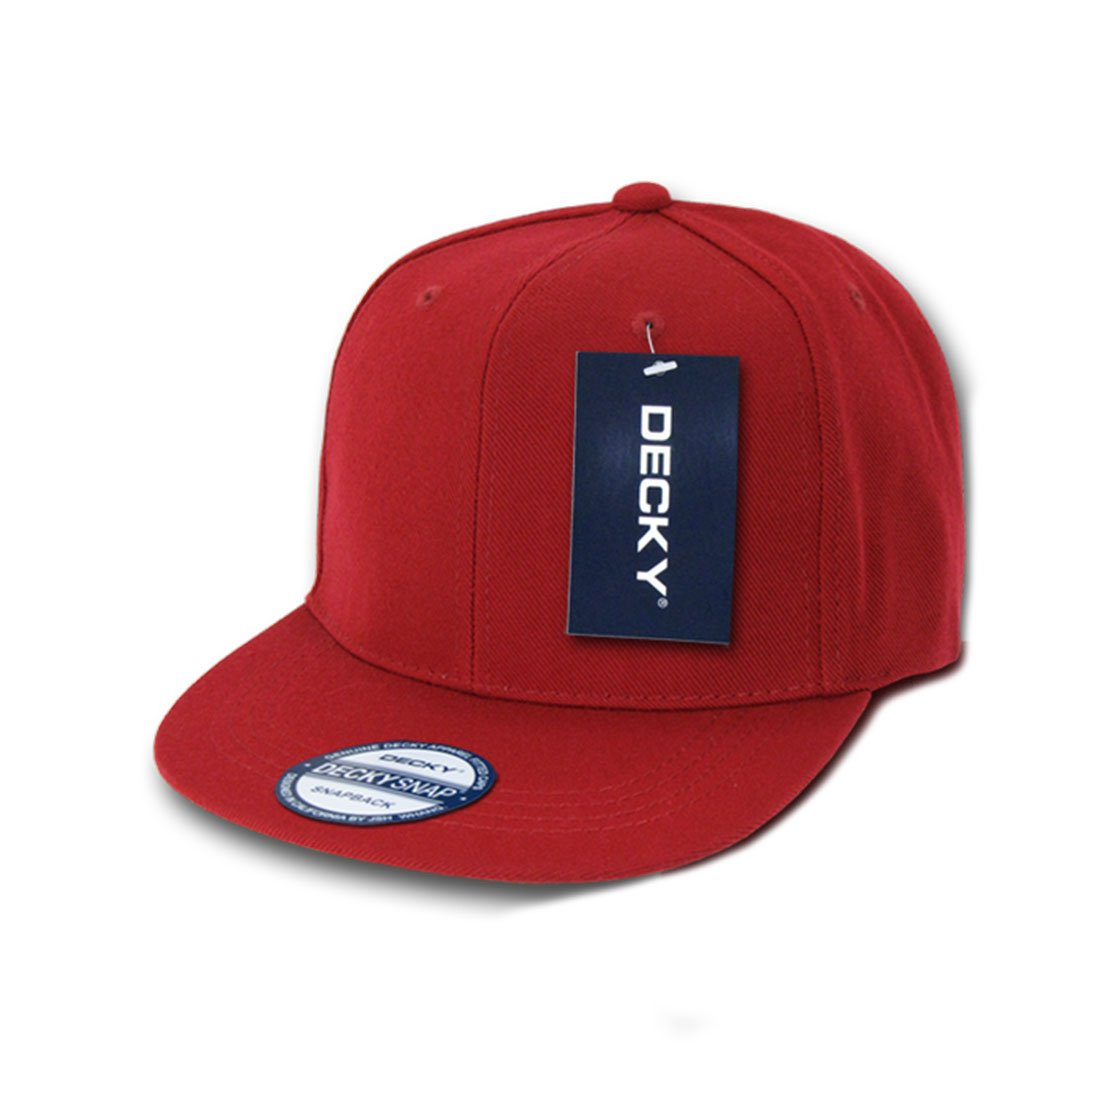 91f91eeae3c26 Amazon.com  Decky Inc Vintage Flat Bill Solid Color Snapback Baseball Caps  350 Cardinal  Clothing